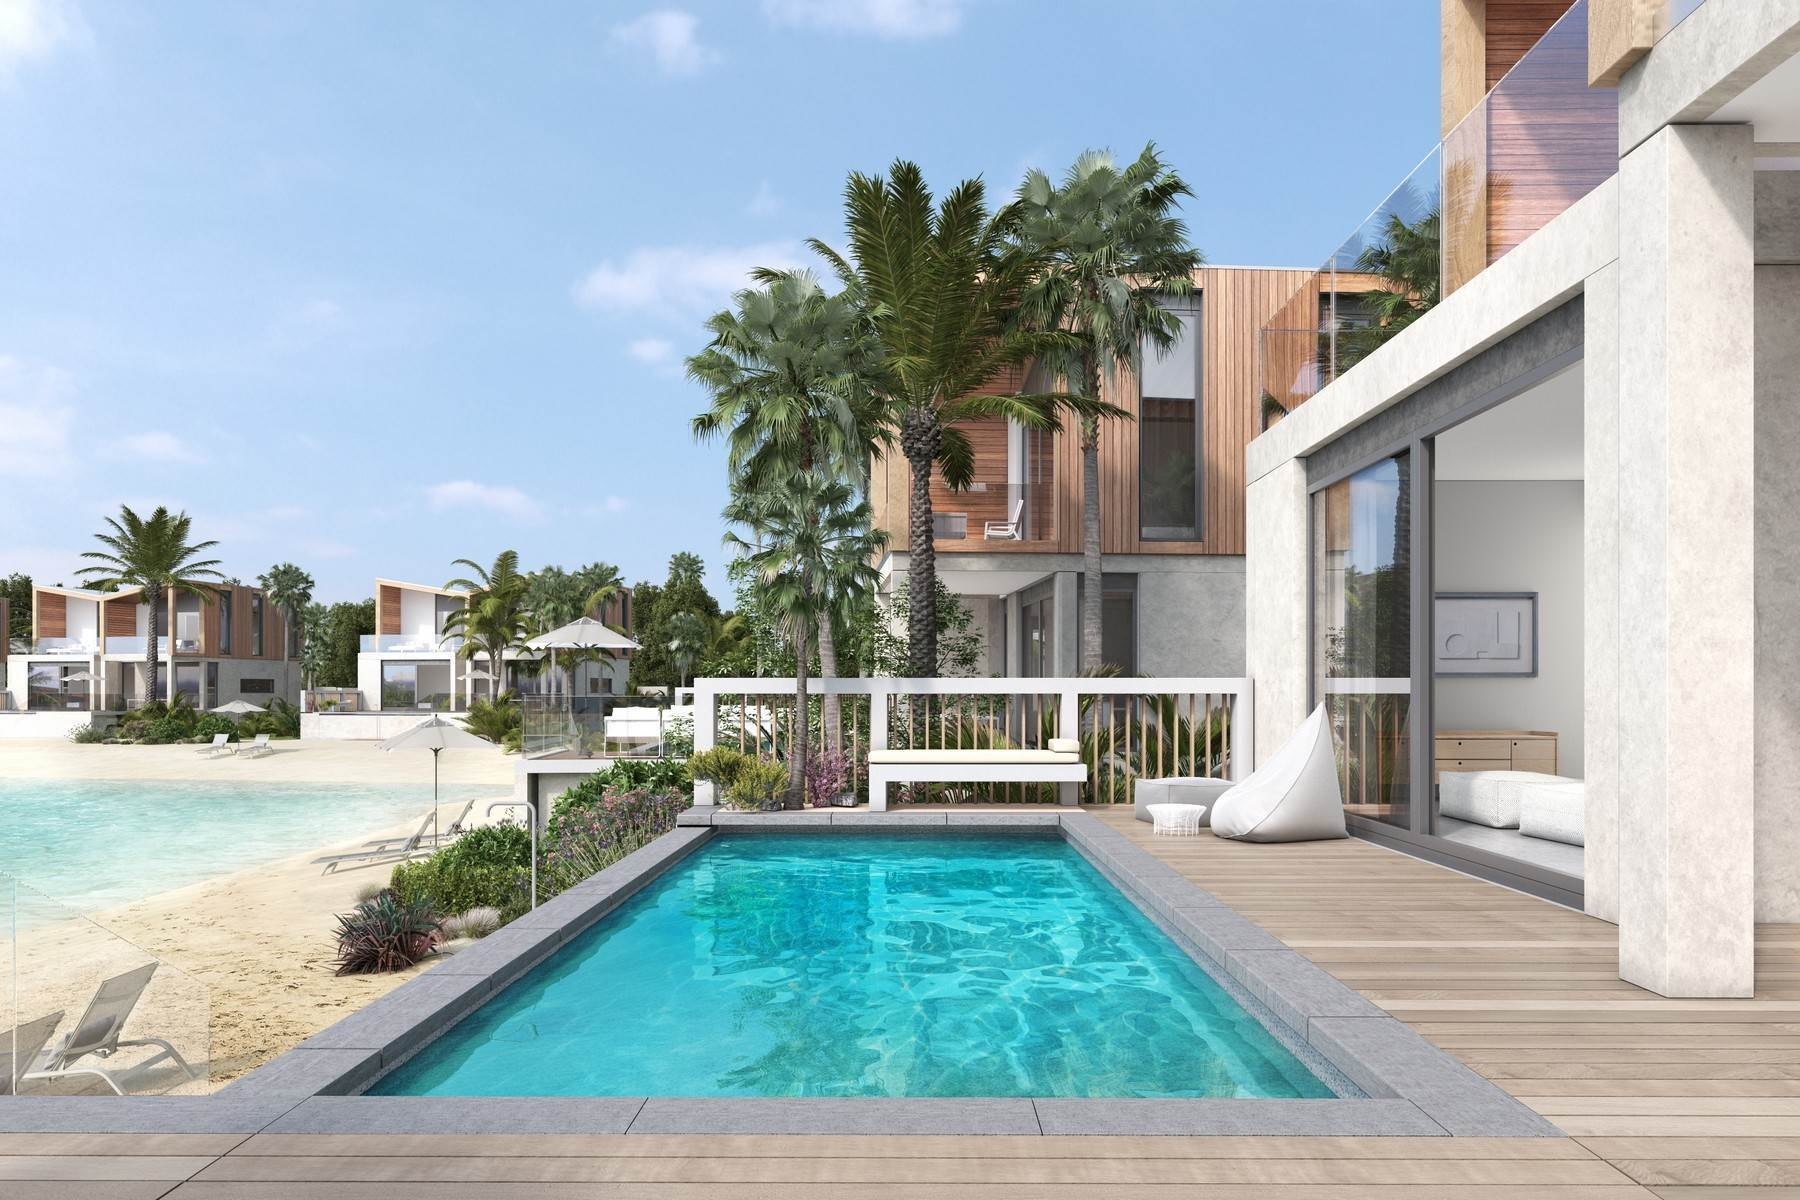 3. Single Family Homes for Sale at SOUTH BANK - THE LAGOON II - LAGOON VILLA 18 South Bank, Long Bay, Providenciales Turks And Caicos Islands